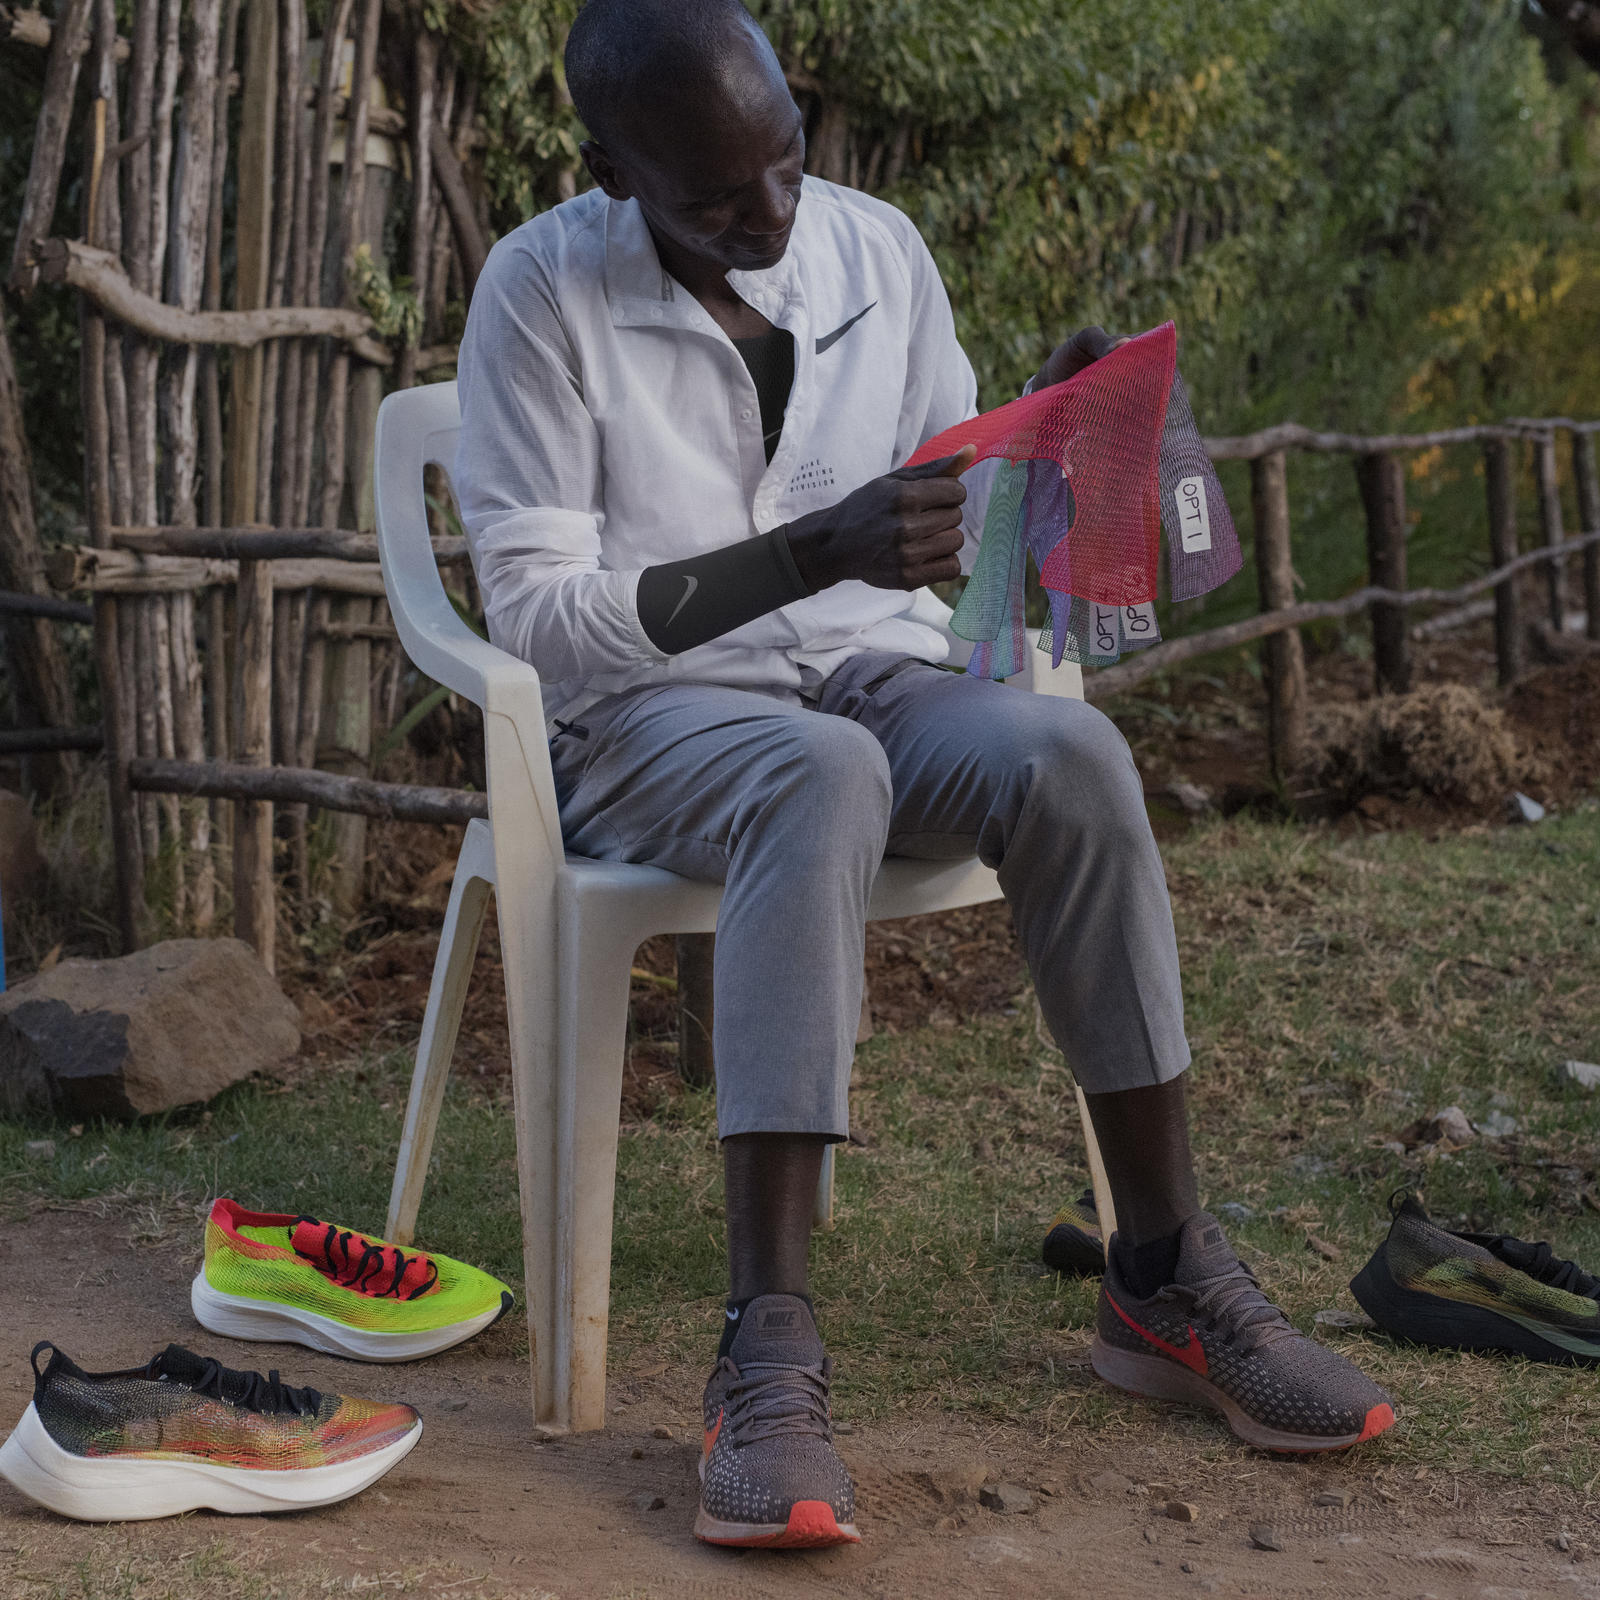 07b7913b03a9 How Eliud Kipchoge Helped Perfect Nike s 3D Printing Process For ...